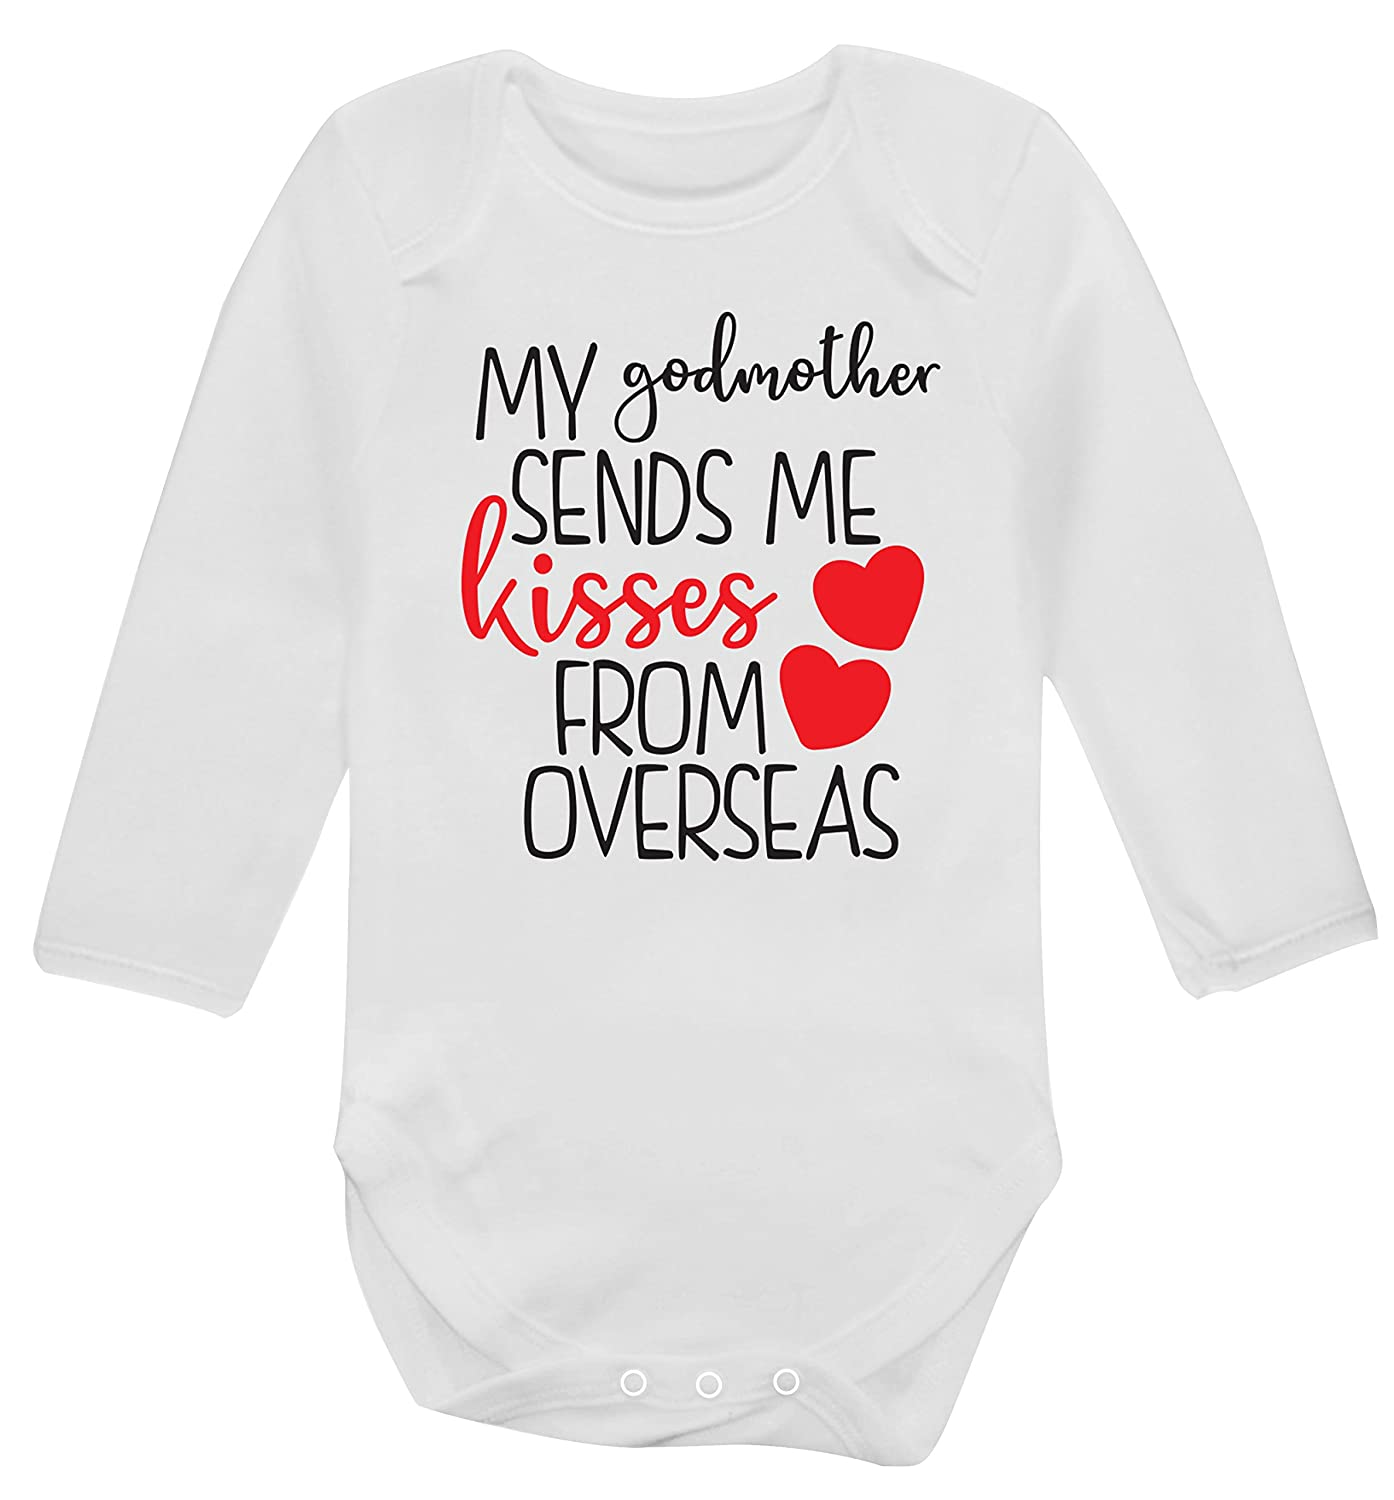 Flox Creative Long Sleeved Baby Vest My Godmother Sends me Kisses from Overseas